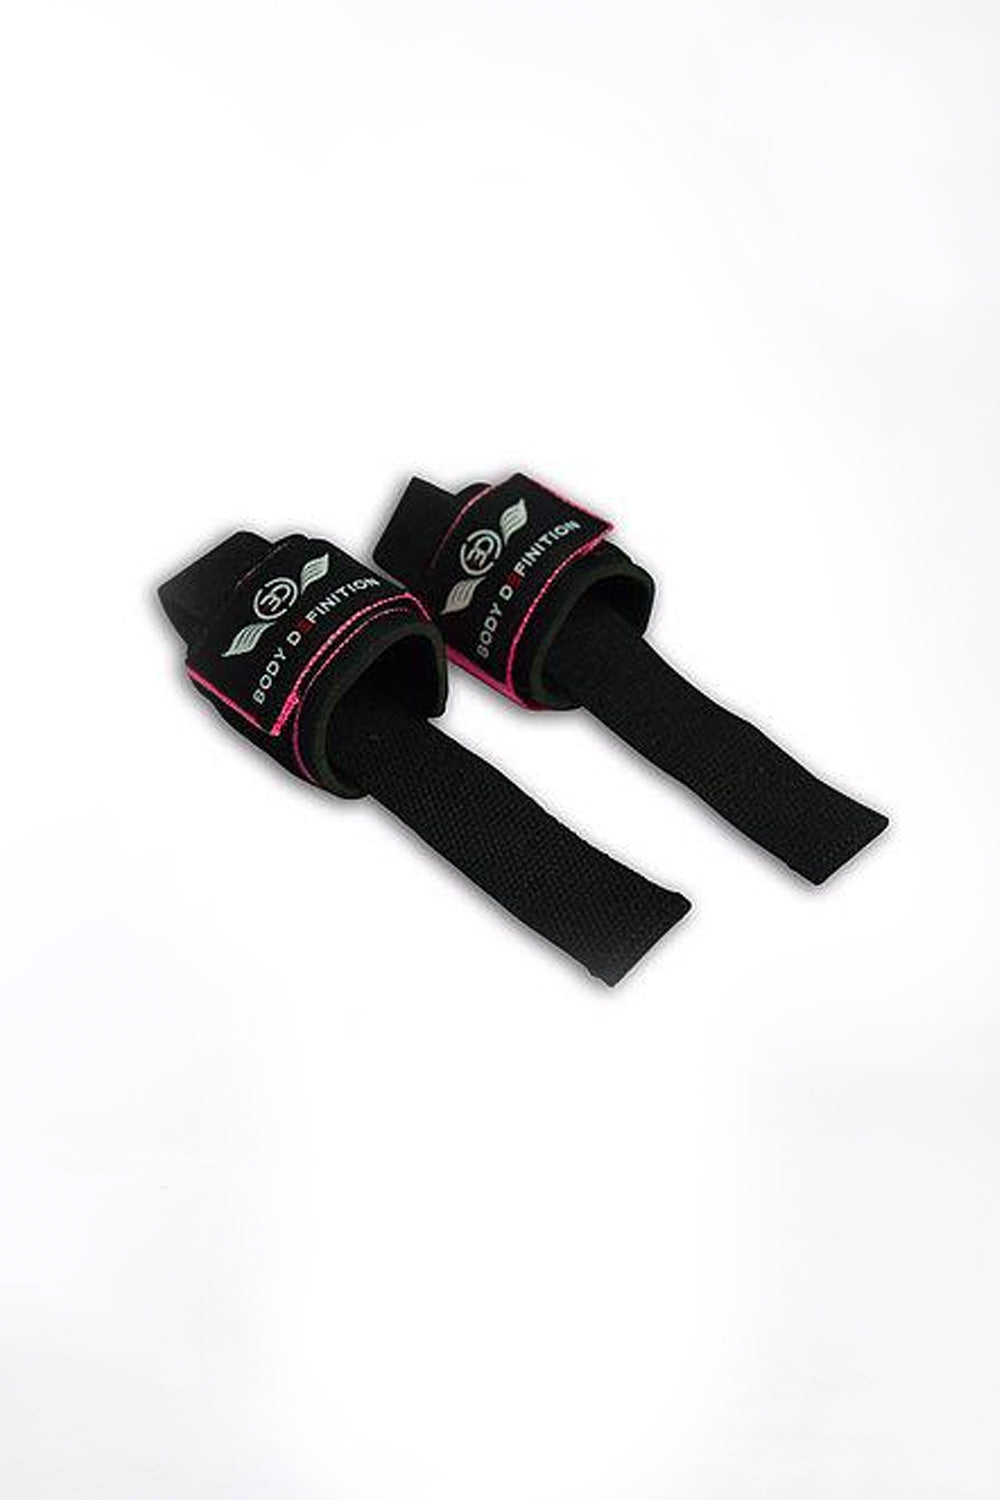 Pink Weight Lifting Straps